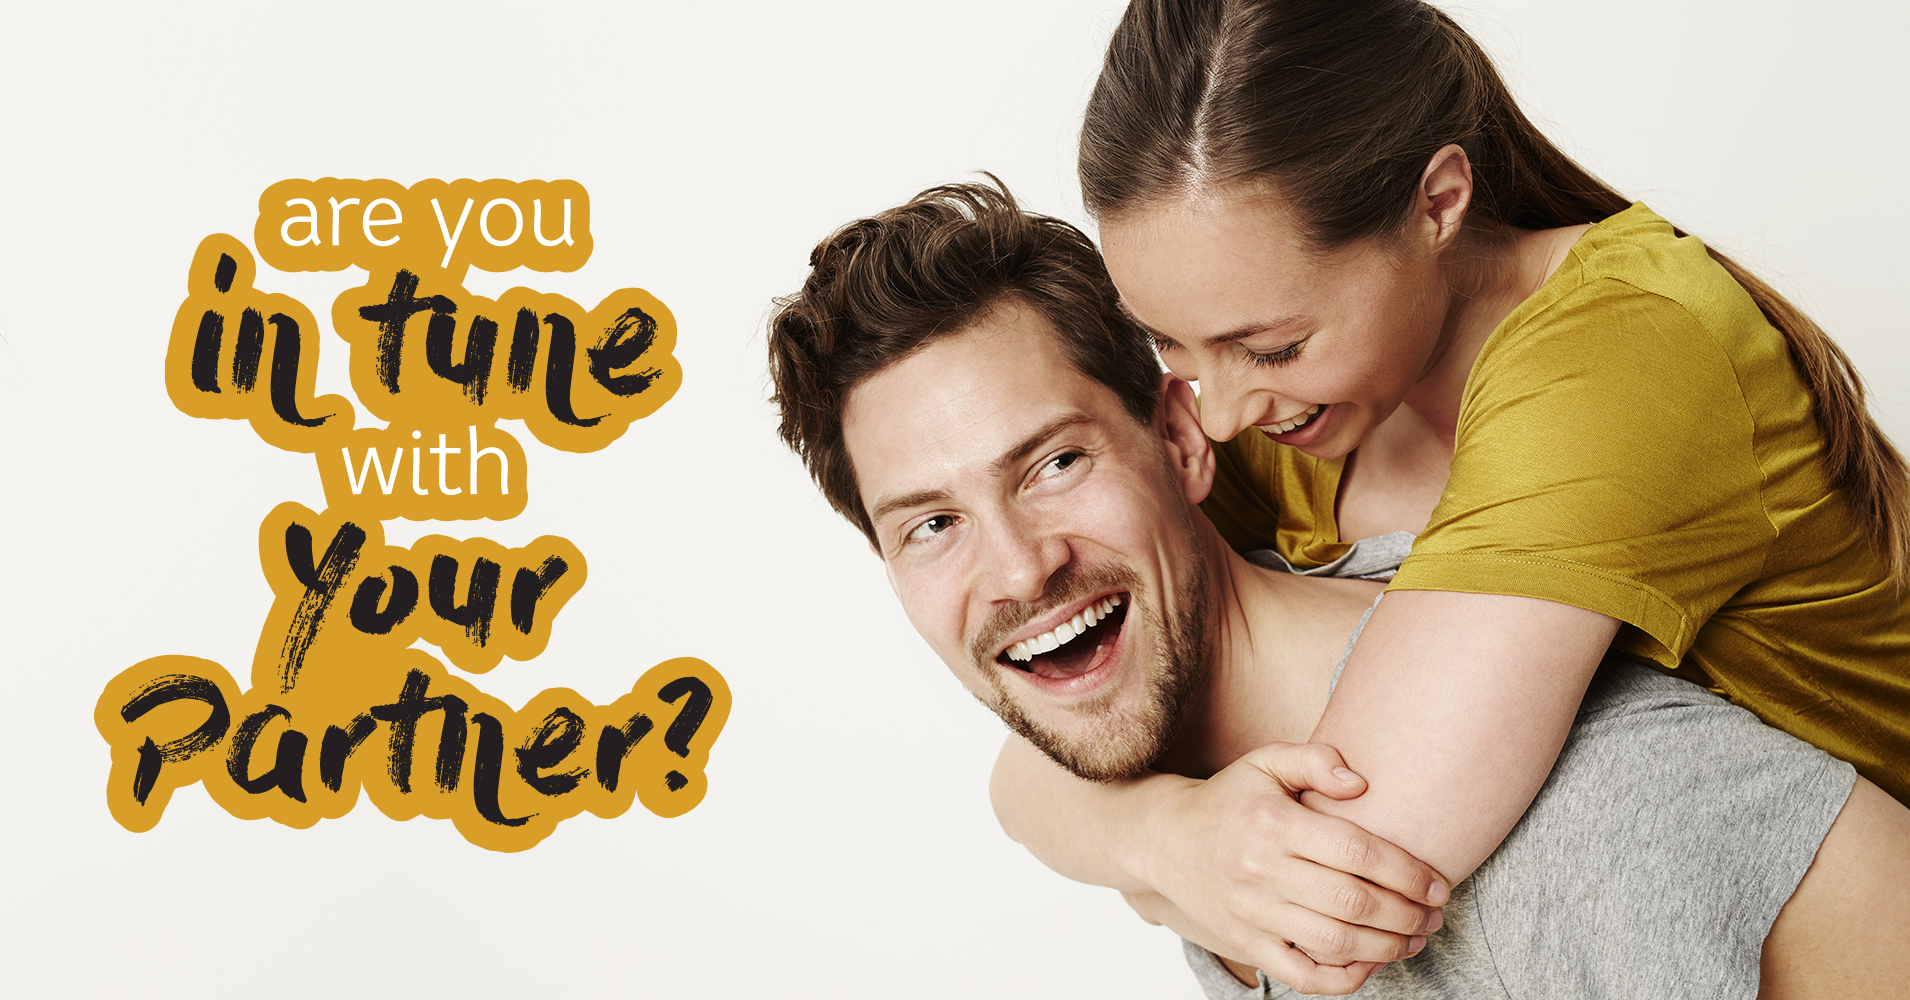 How Well Do You Know Your Partner Quiz: How Well Do You Know Your Partner?